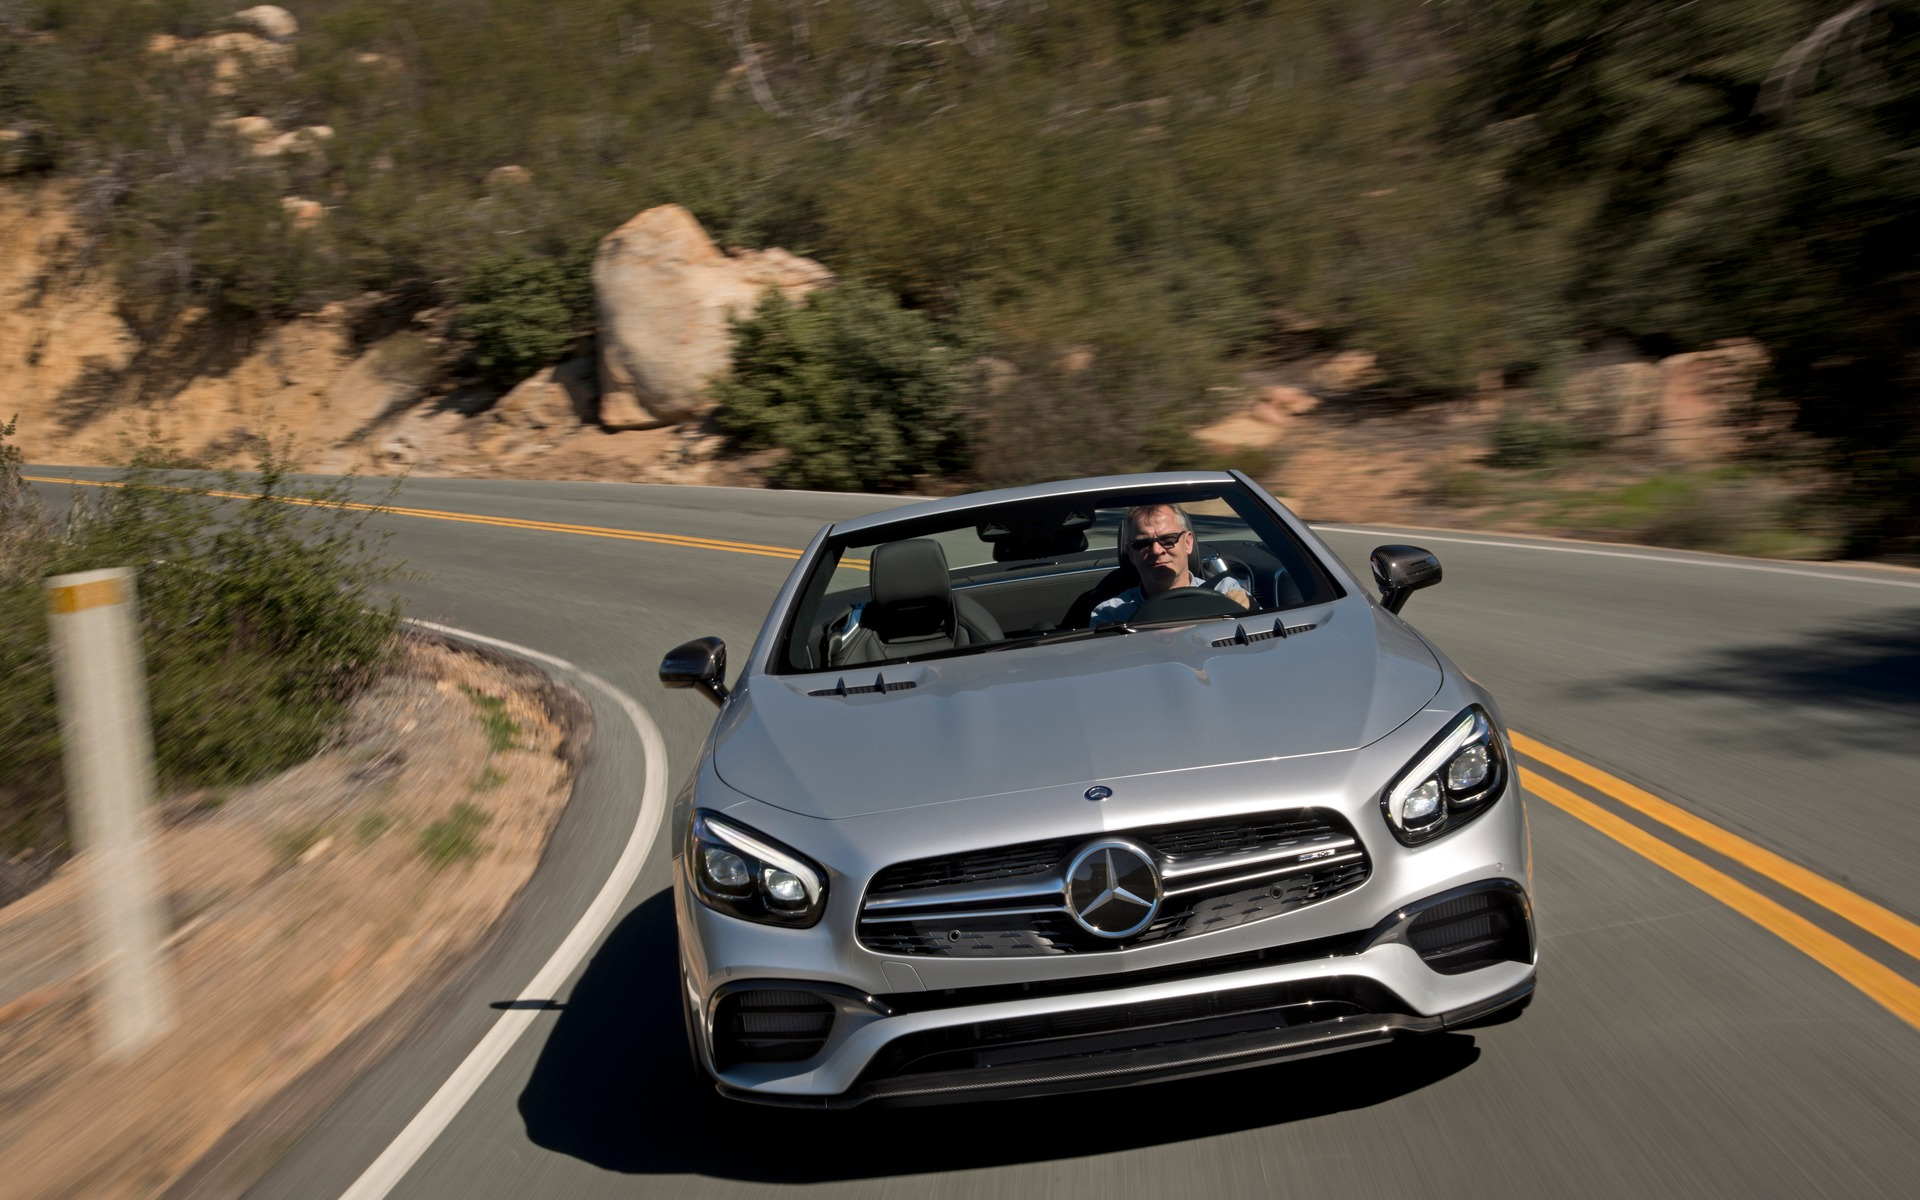 2017 Mercedes-Benz SL: More Evocative and More Refined - 24/36